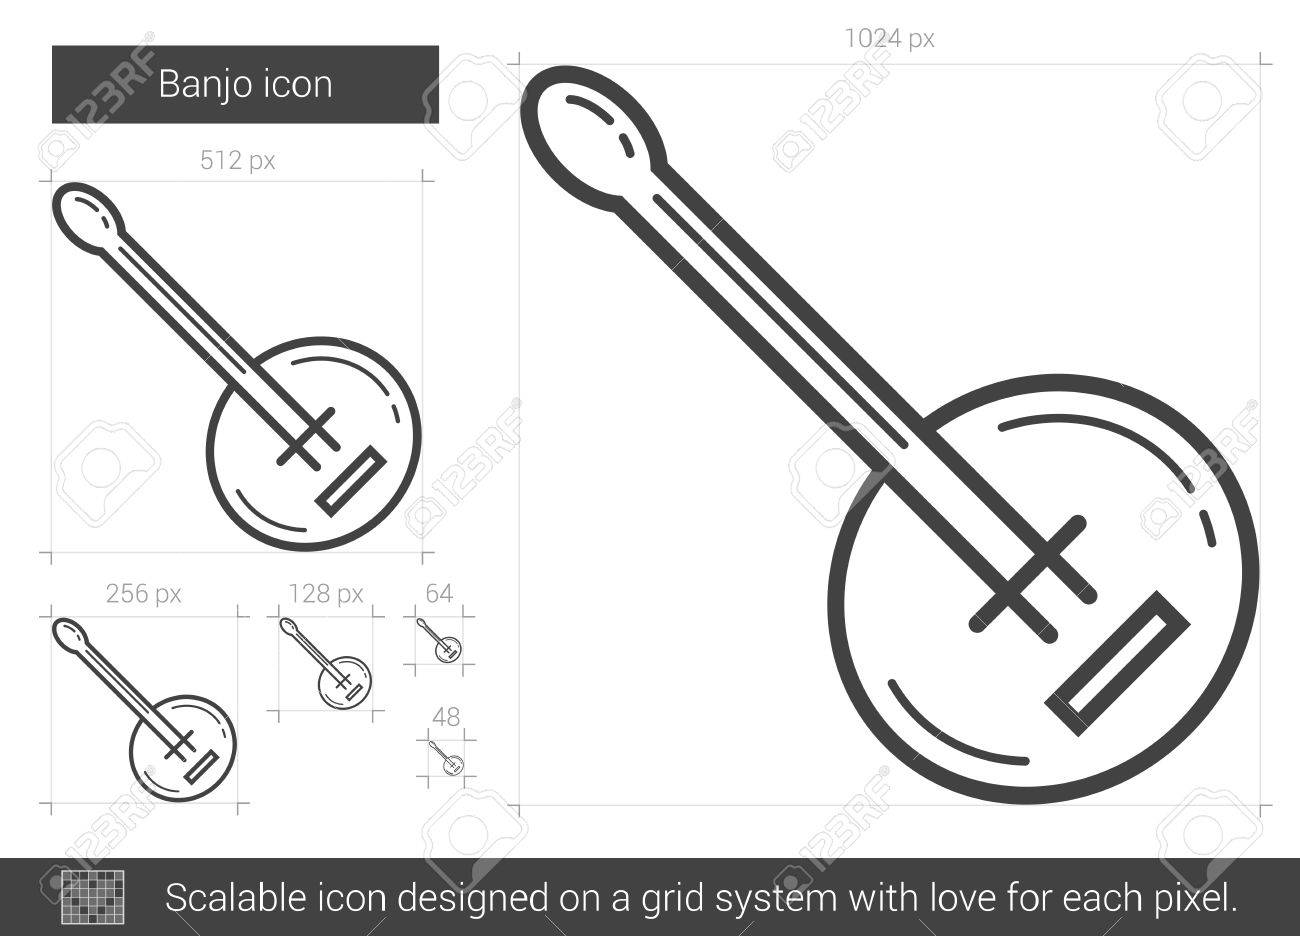 Banjo vector line icon isolated on white background. Banjo line icon for infographic, website or app. Scalable icon designed on a grid system. - 64202747